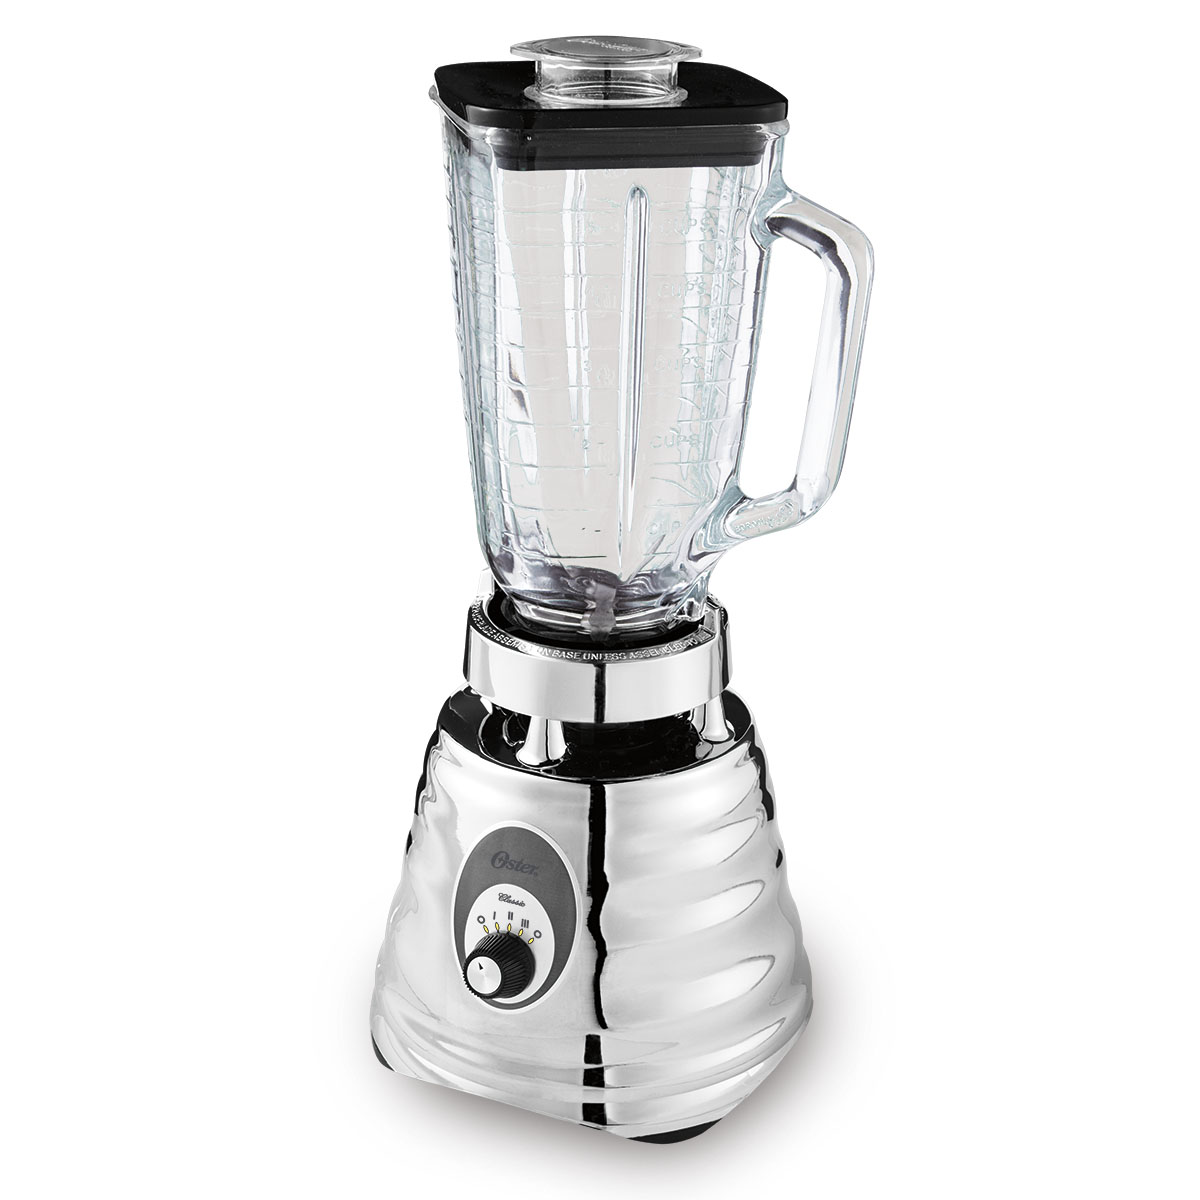 Dimensions Oster Blender ~ Oster classic series kitchen center blender at